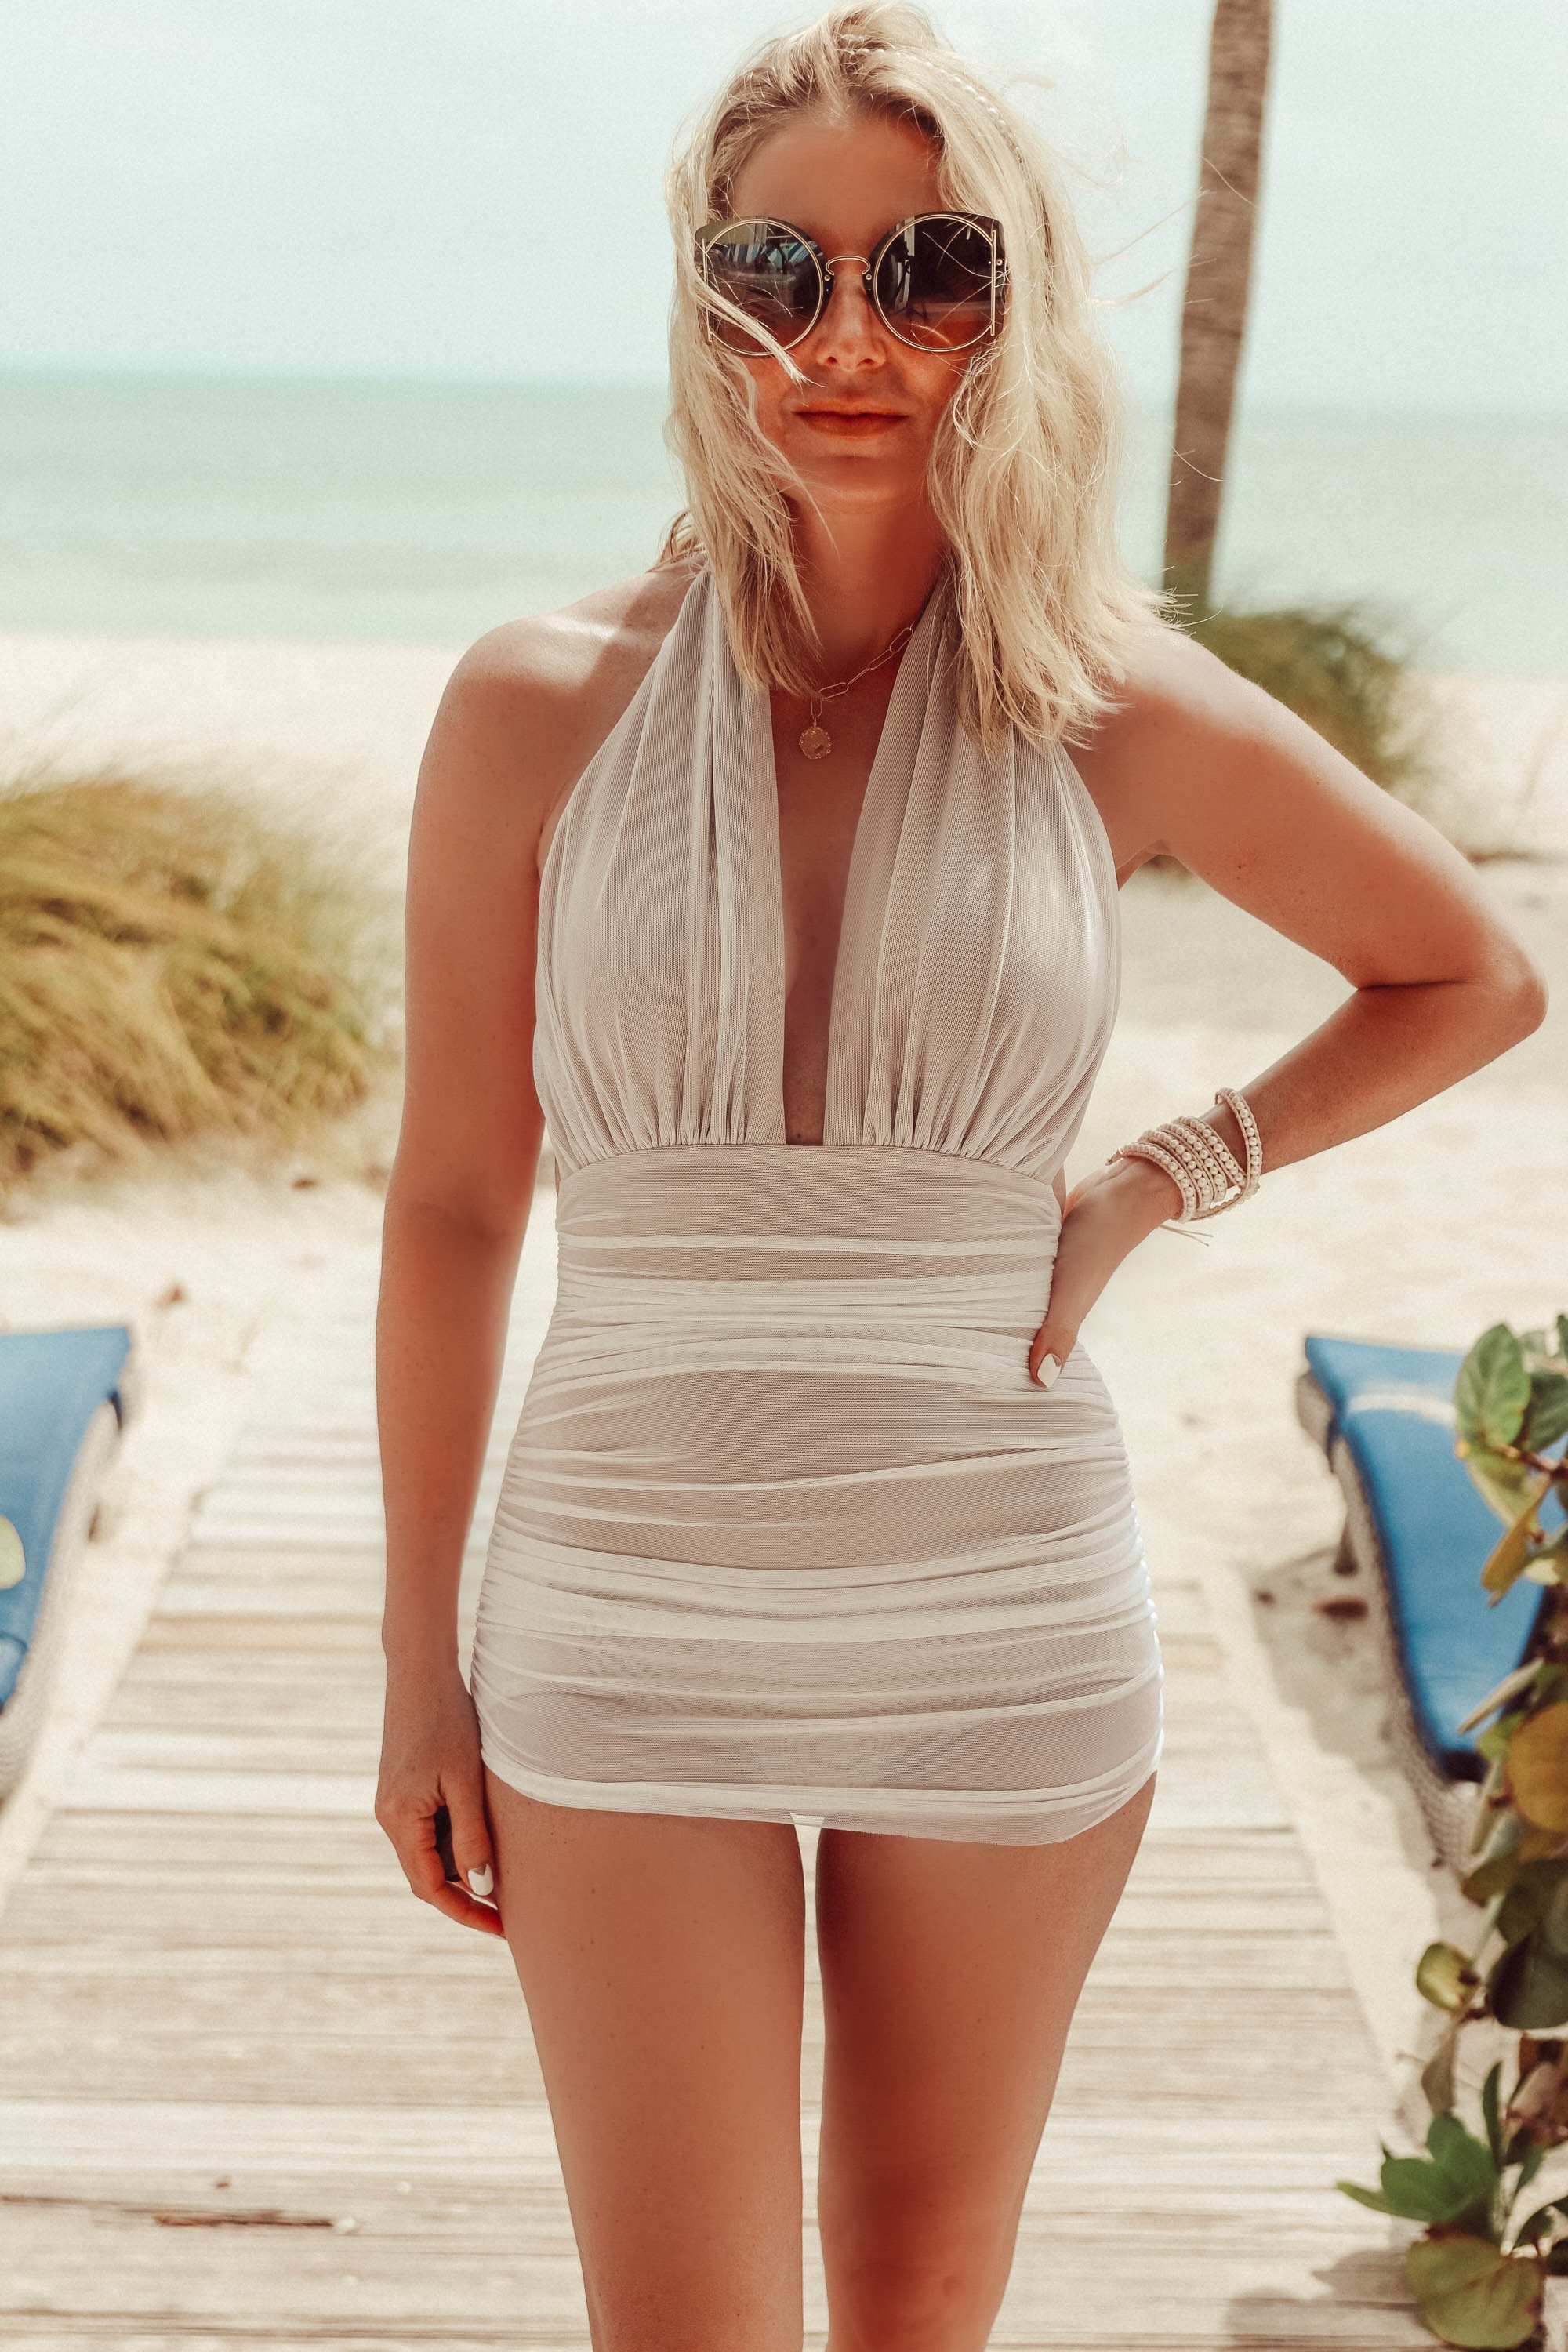 Flattering Swimsuits, Fashion blogger Erin Busbee of BusbeeStyle.com wearing a halter neck mesh overlay one-piece swimsuit by Norma Kamali in the Bahamas